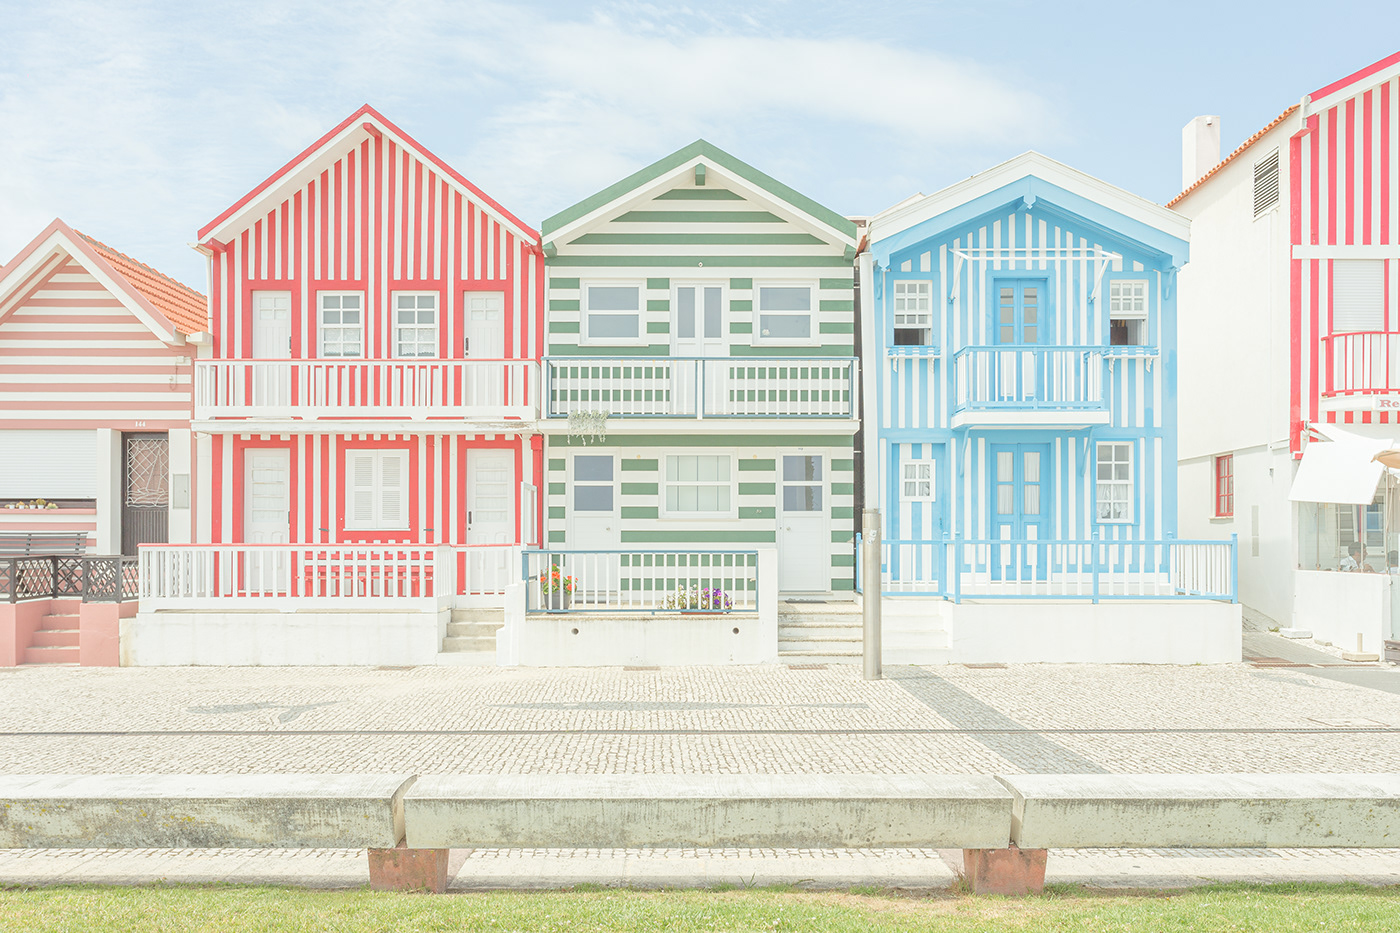 Frontal view of some lovely houses in Costa Nova